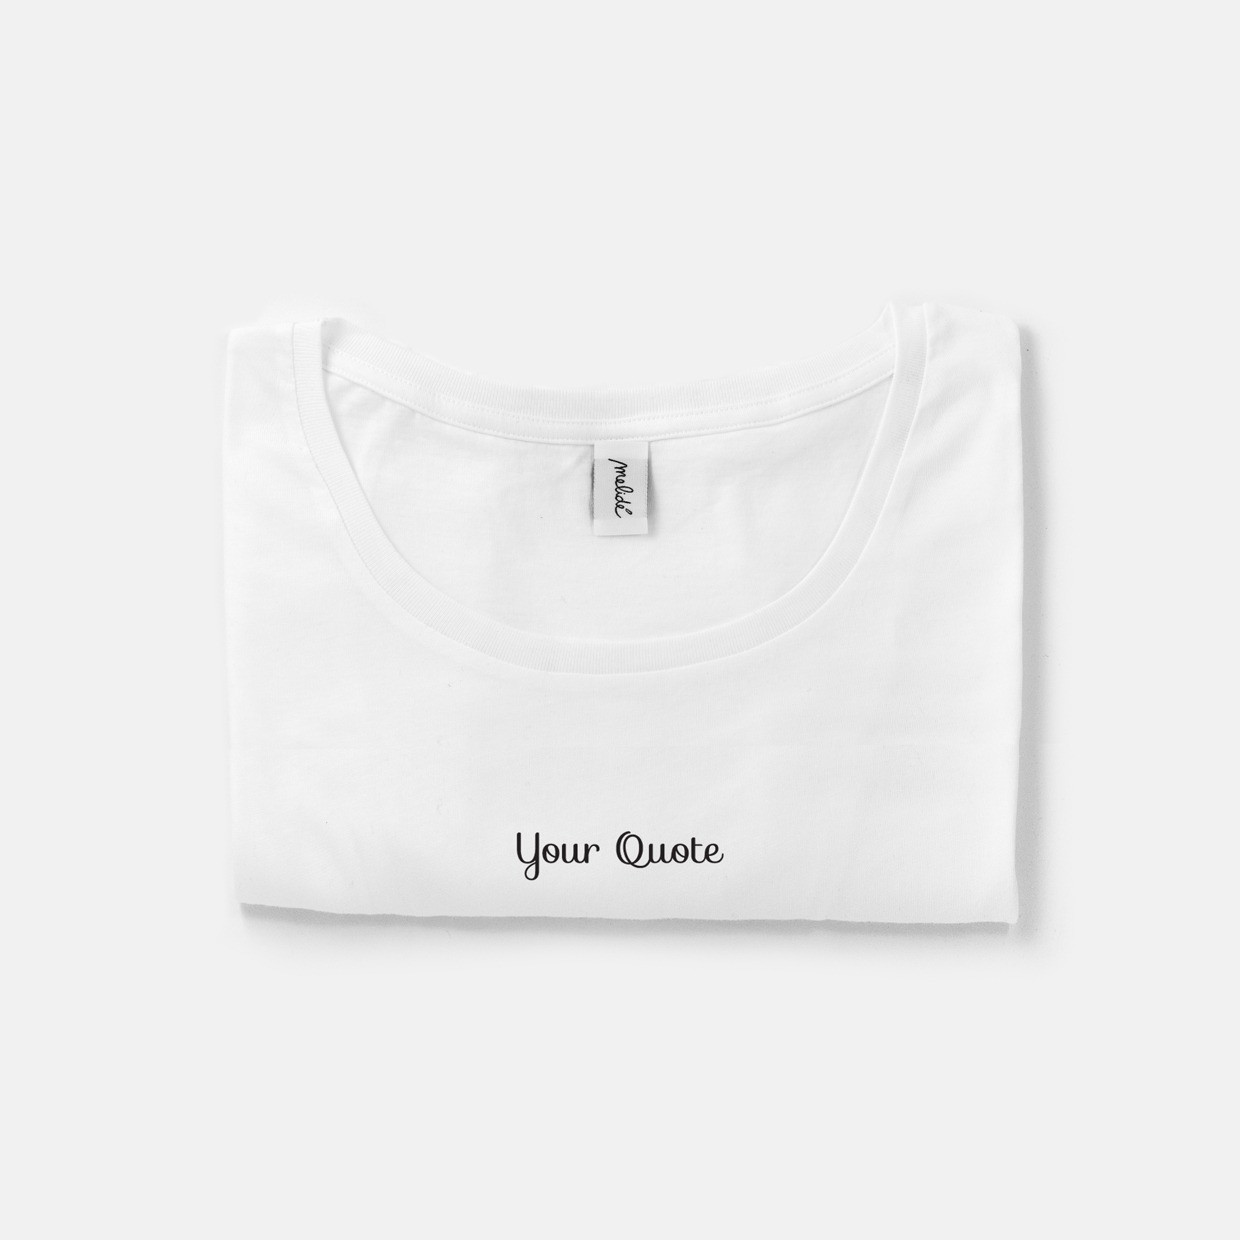 The YOUR QUOTE wide neck tee